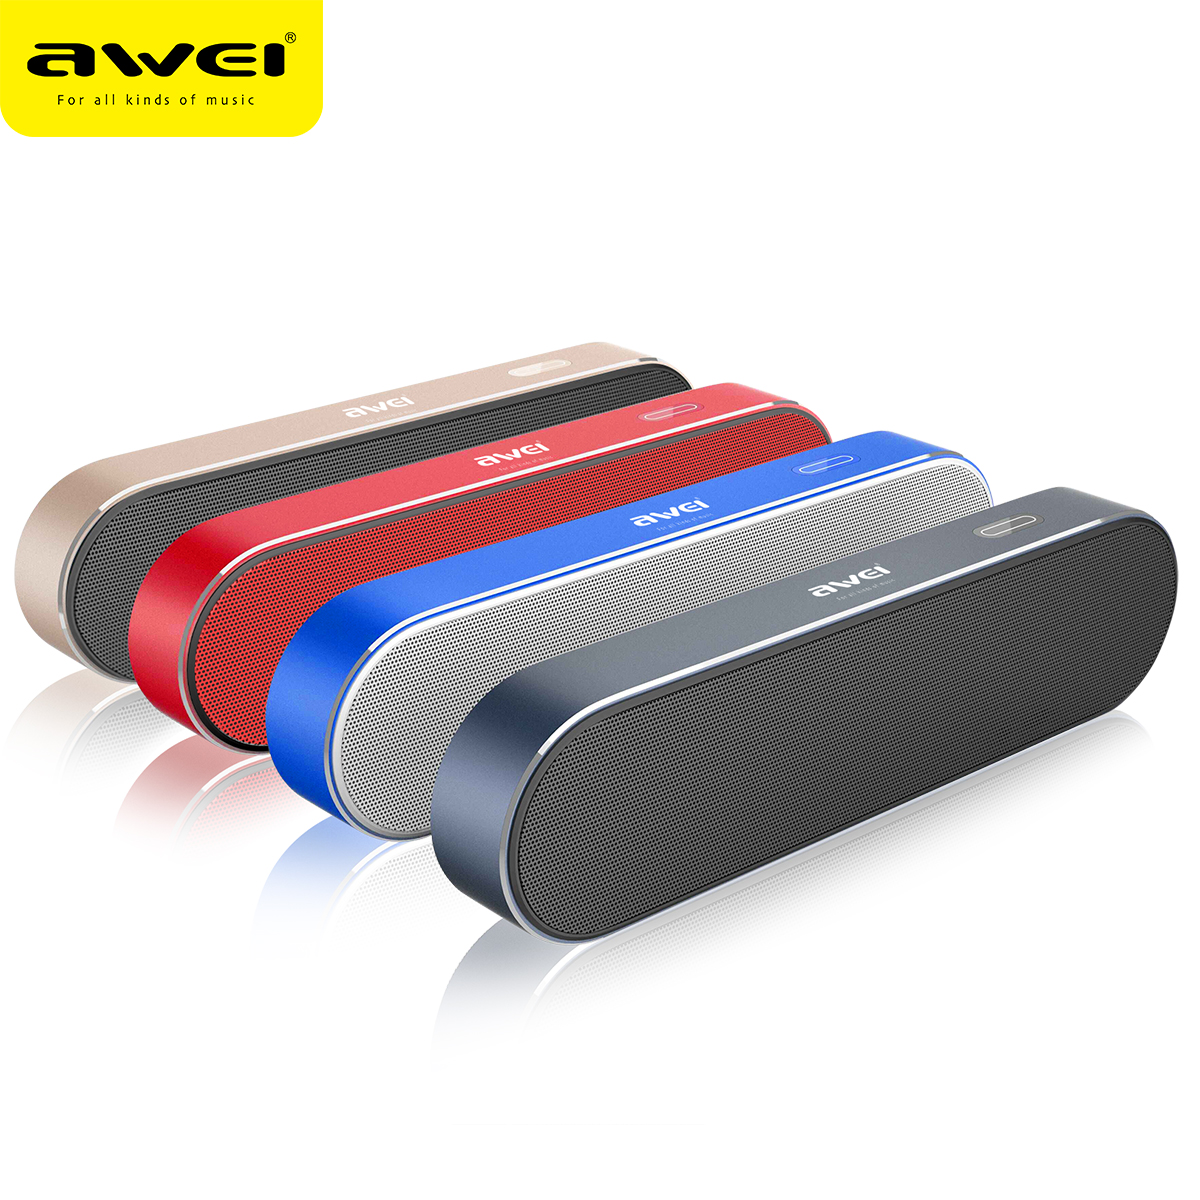 AWEI Y220 Portable Dual-Driver Wireless Bluetooth Speaker фото